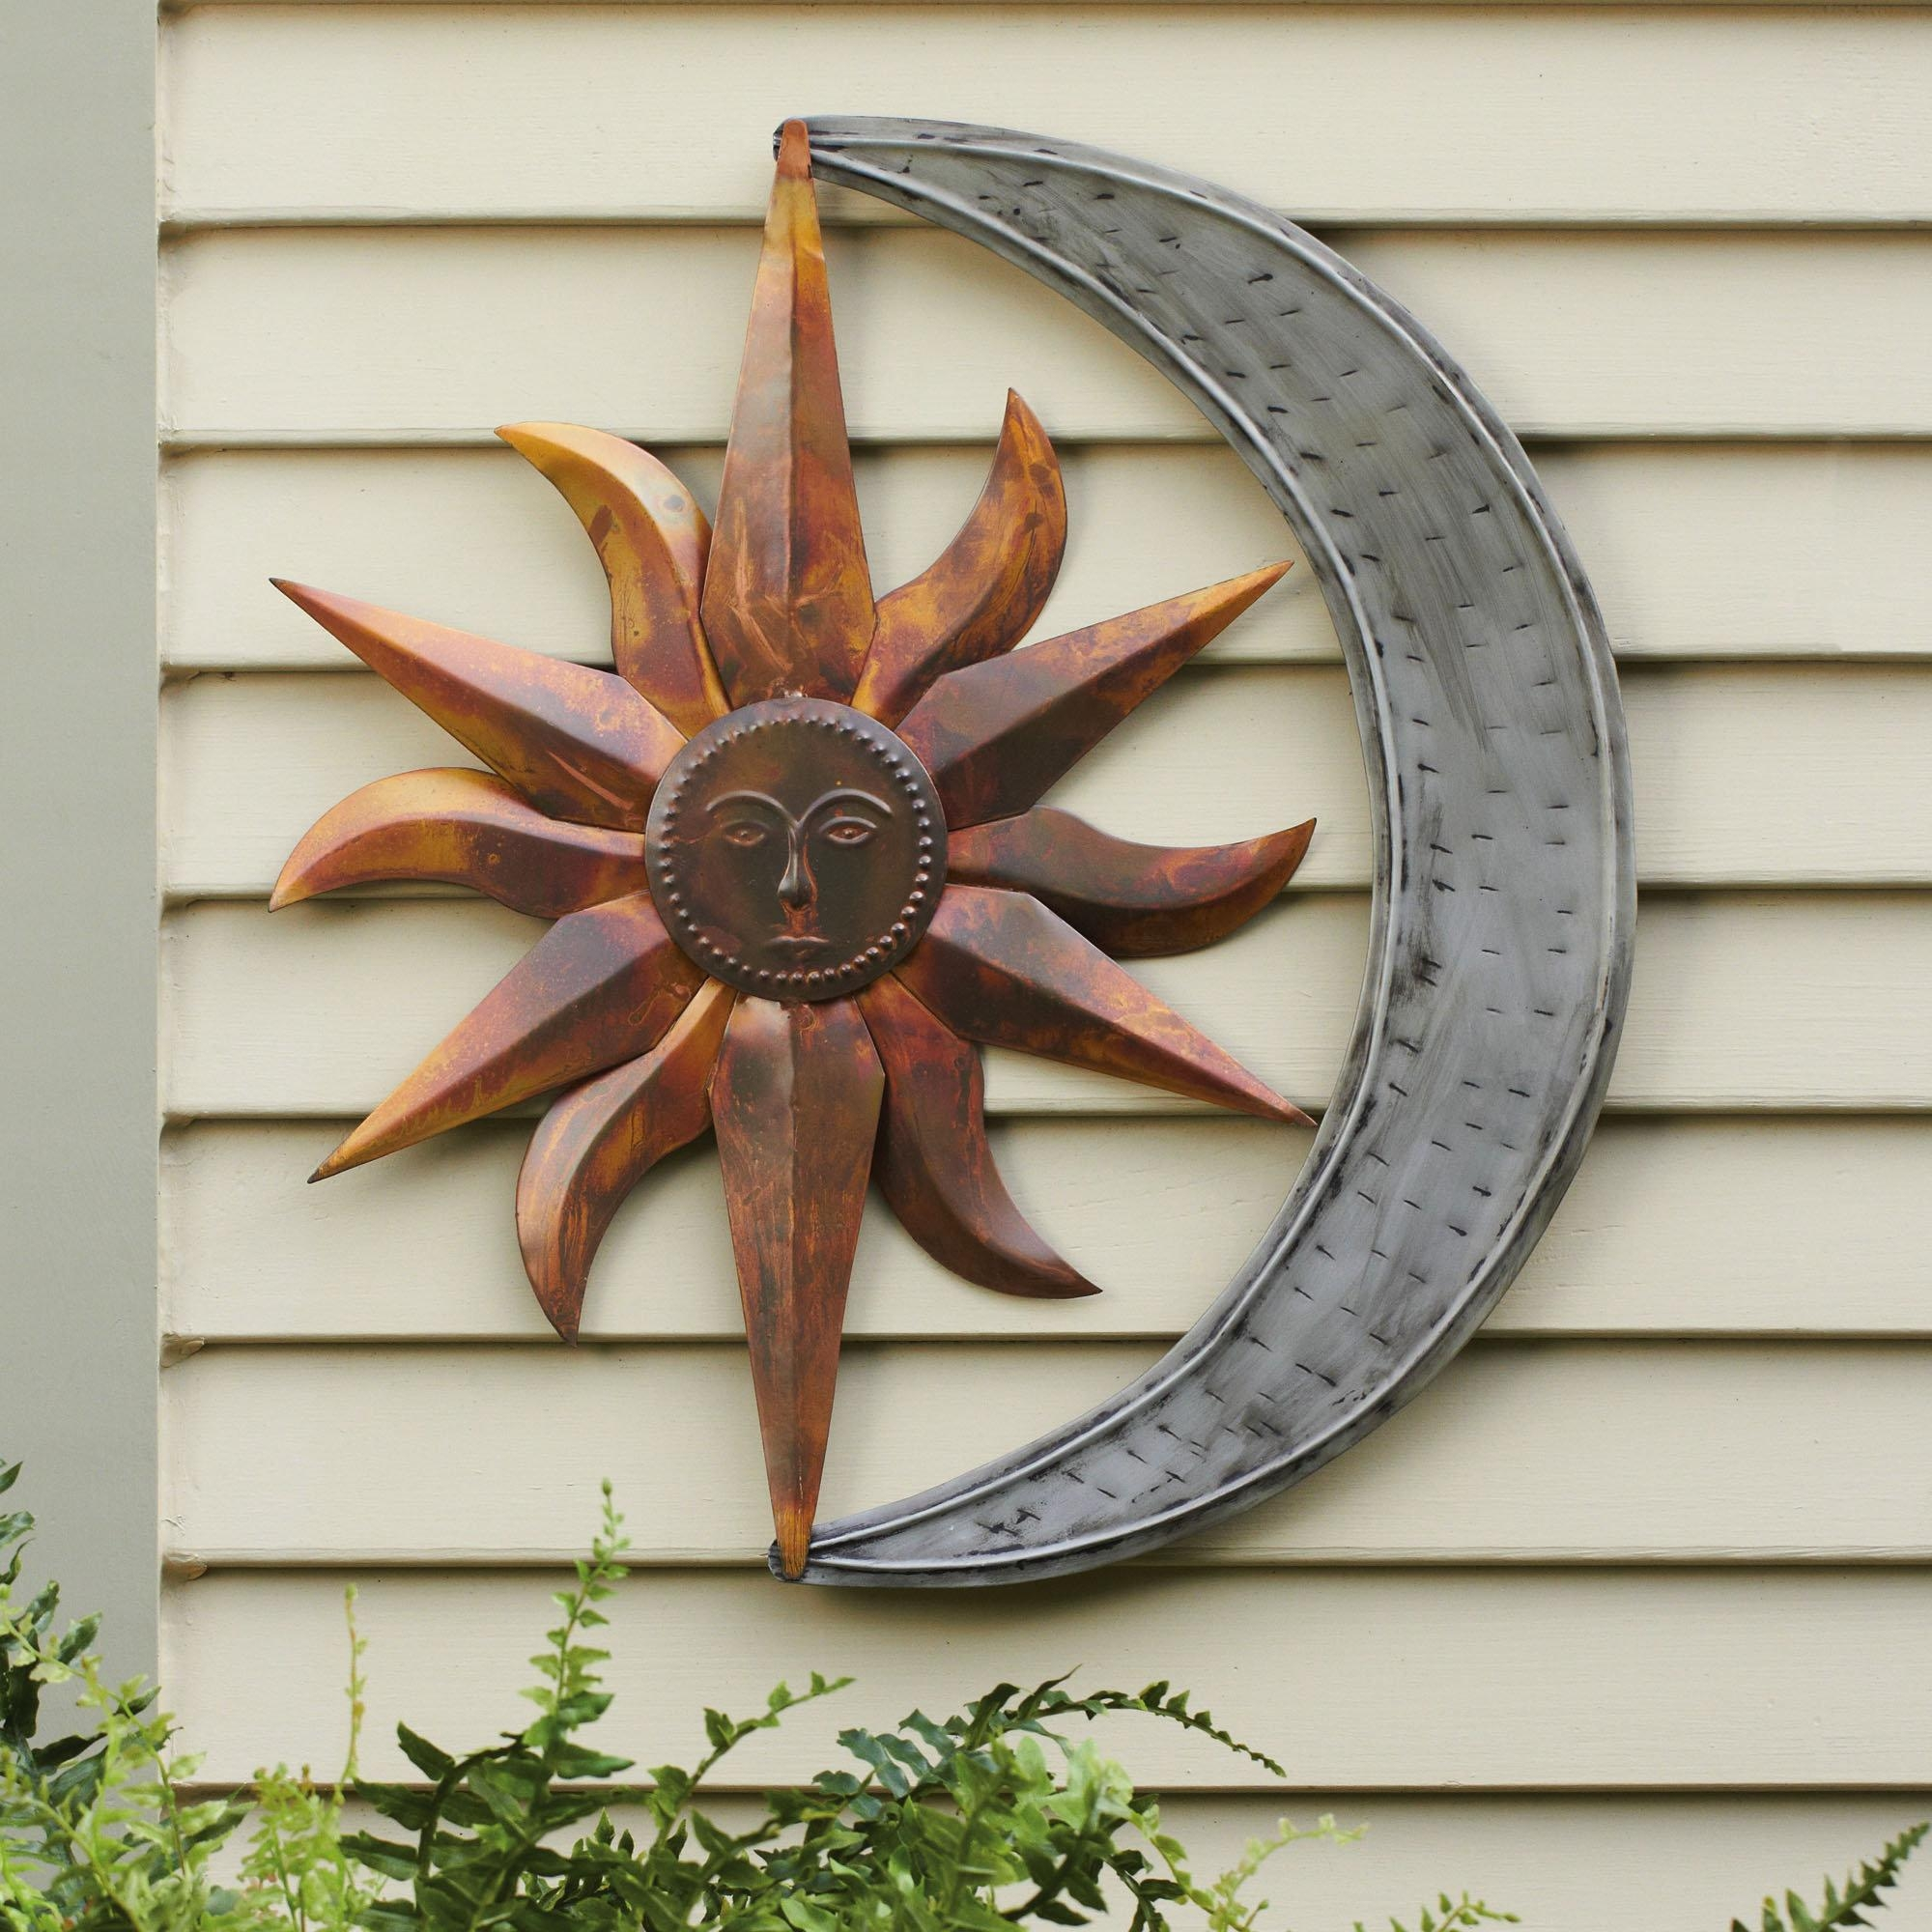 Wall Art Designs: Outdoor Metal Wall Art Star Metal Wall Art Moon For Decorative Outdoor Metal Wall Art (View 2 of 20)